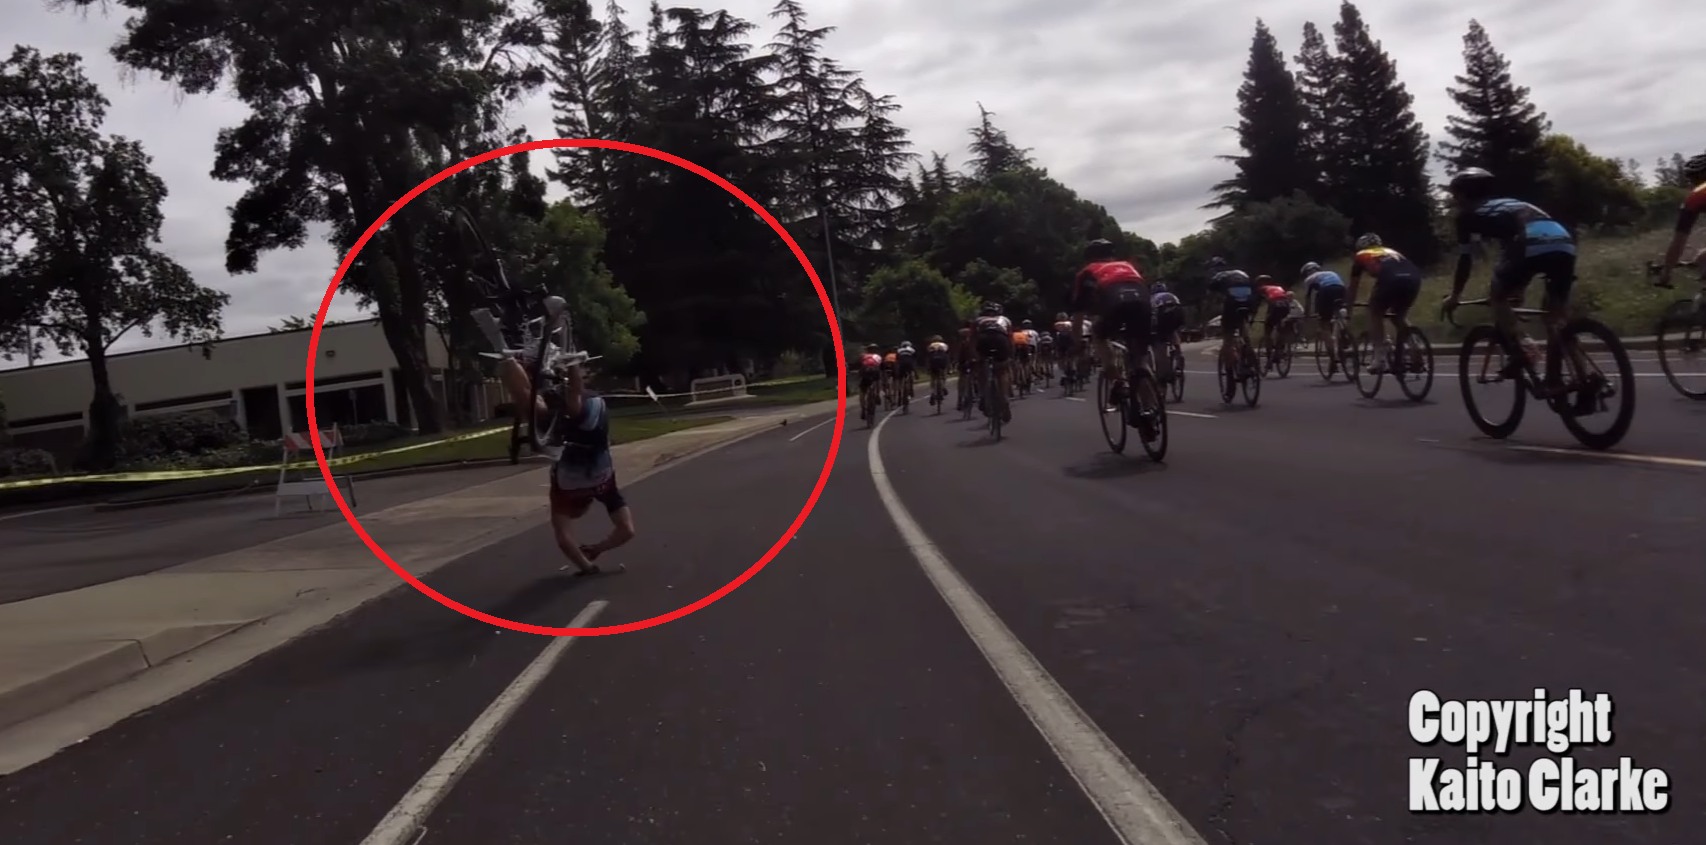 A DJI Phantom crashed into a bike race — causing the cyclist to fly over the handles